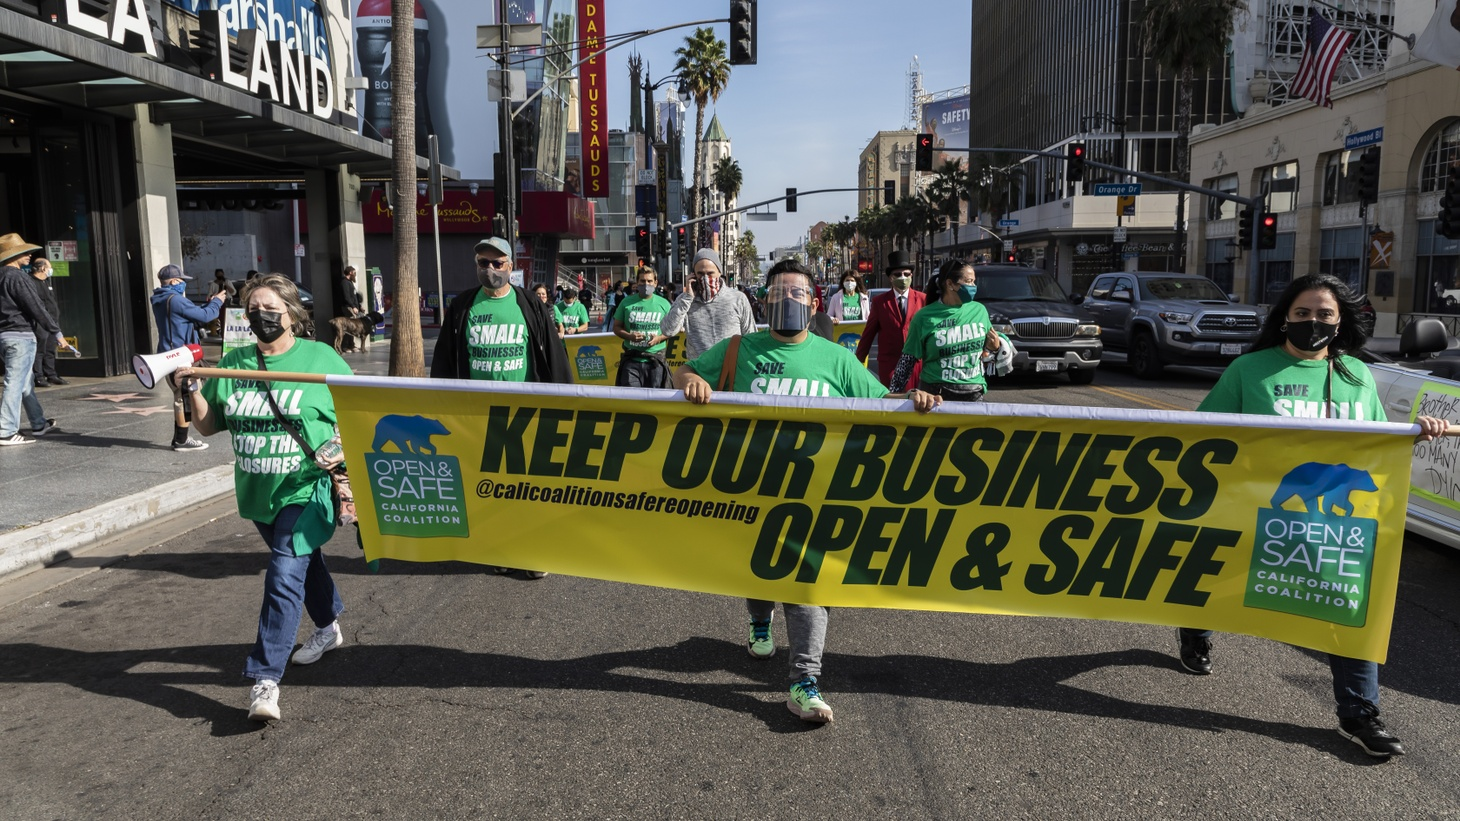 Business owners and employees from the California Coalition for Safe Reopening hold a protest against business closure orders. The small business owners — mostly from the food, beverage, and entertainment industries — feel they are being unfairly targeted for closures as government officials are concerned about the spread of coronavirus. Photo taken October 12, 2020 in Hollywood, CA, USA.